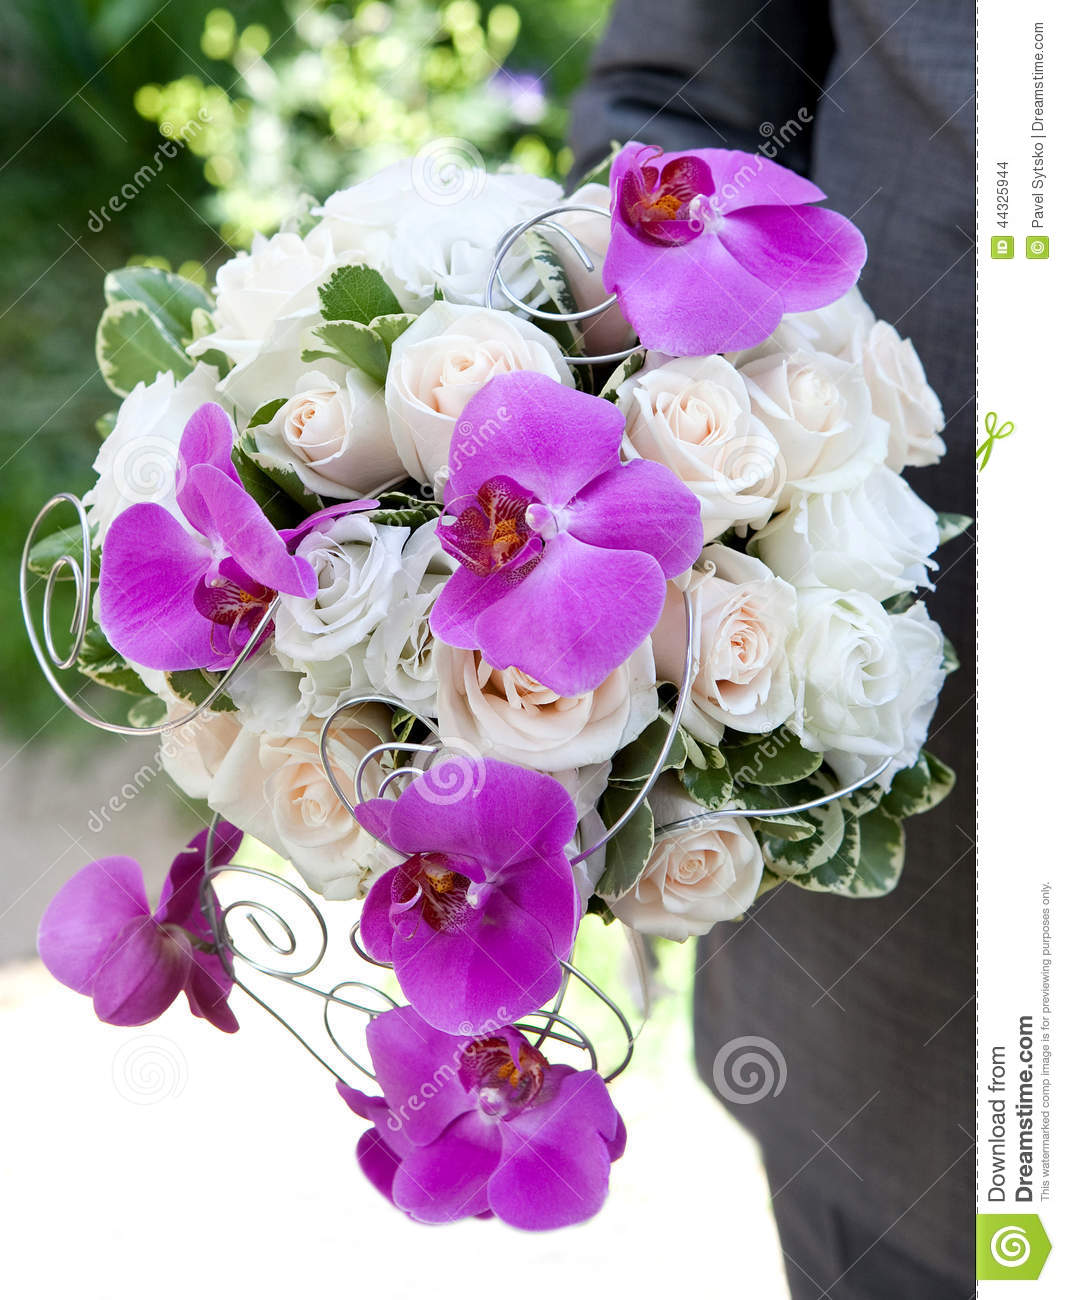 wedding bouquet bouquet of fresh flowers orchids and roses for the wedding ceremony stock. Black Bedroom Furniture Sets. Home Design Ideas